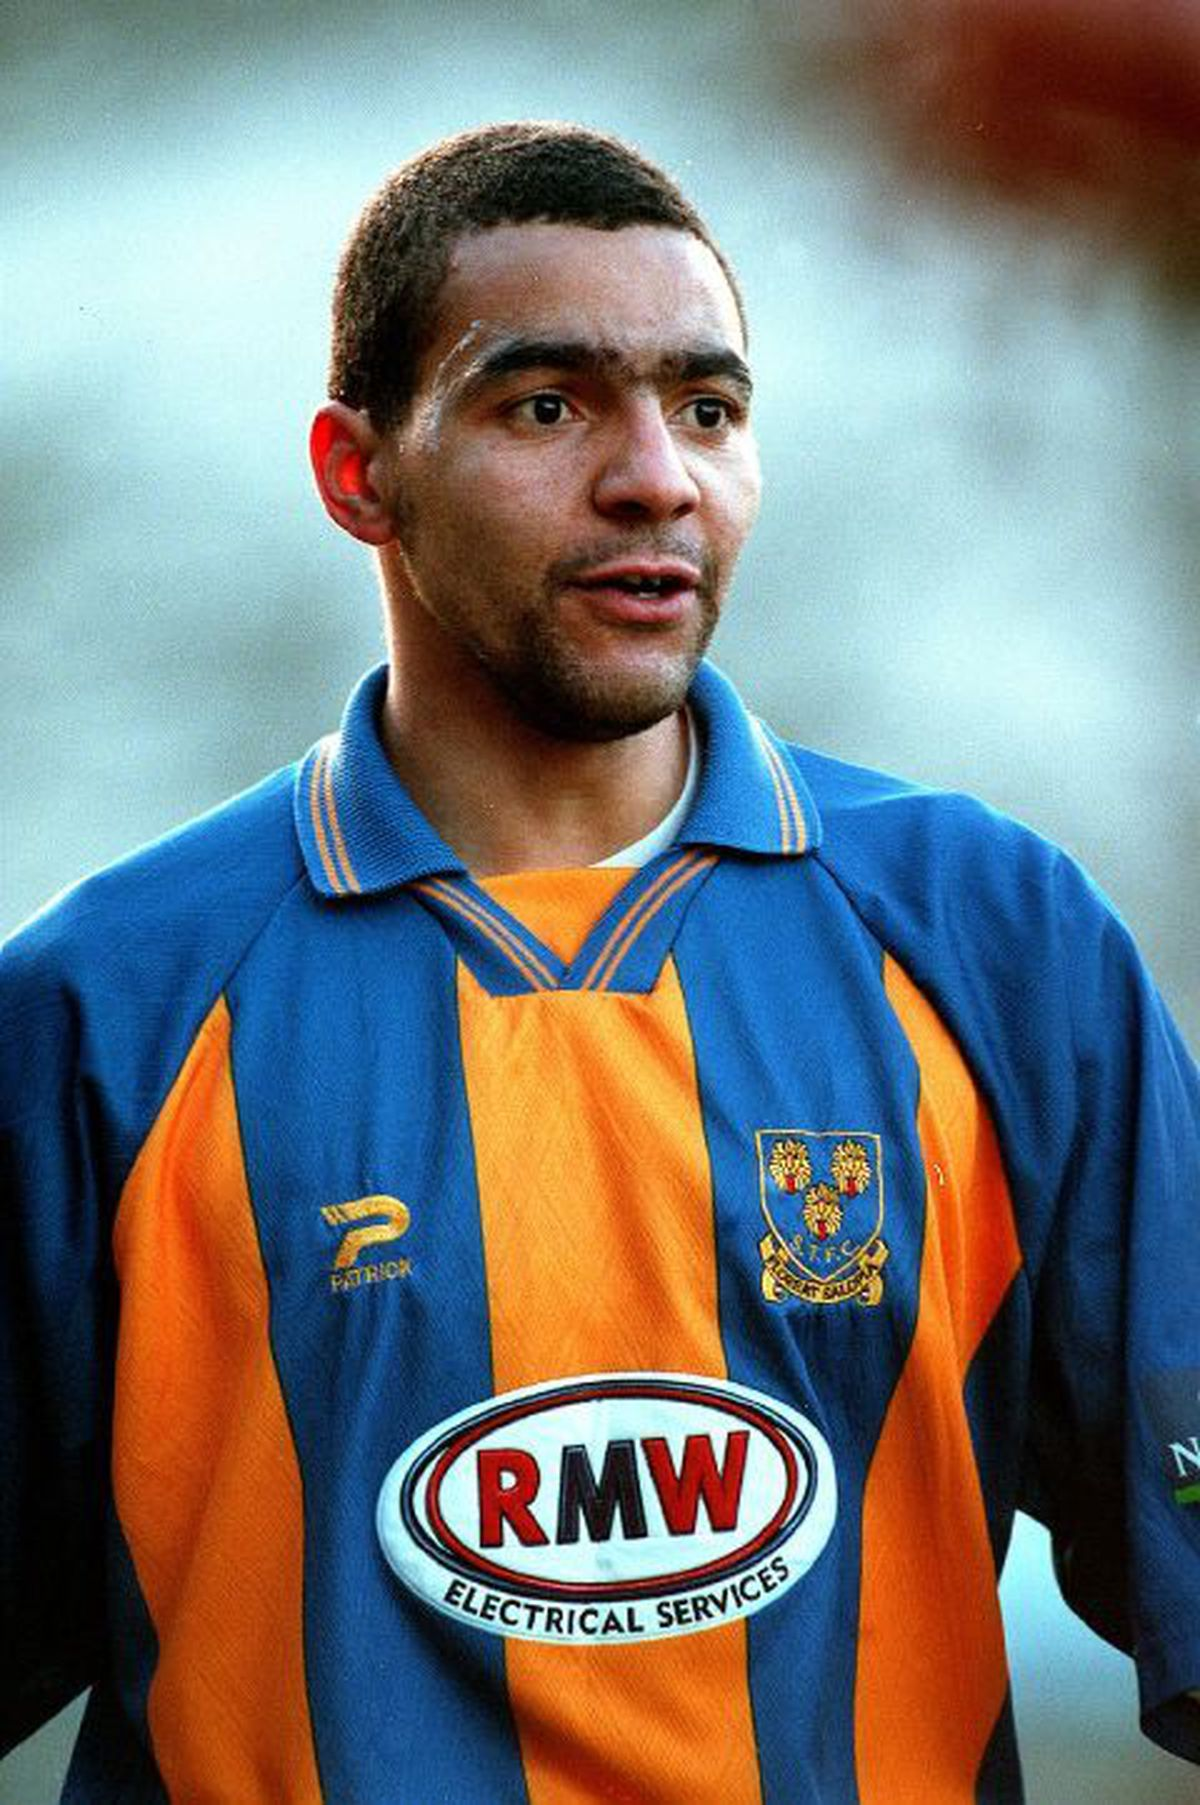 Whelan managed just 25 league appearances for Town, where he was hampered by injuries